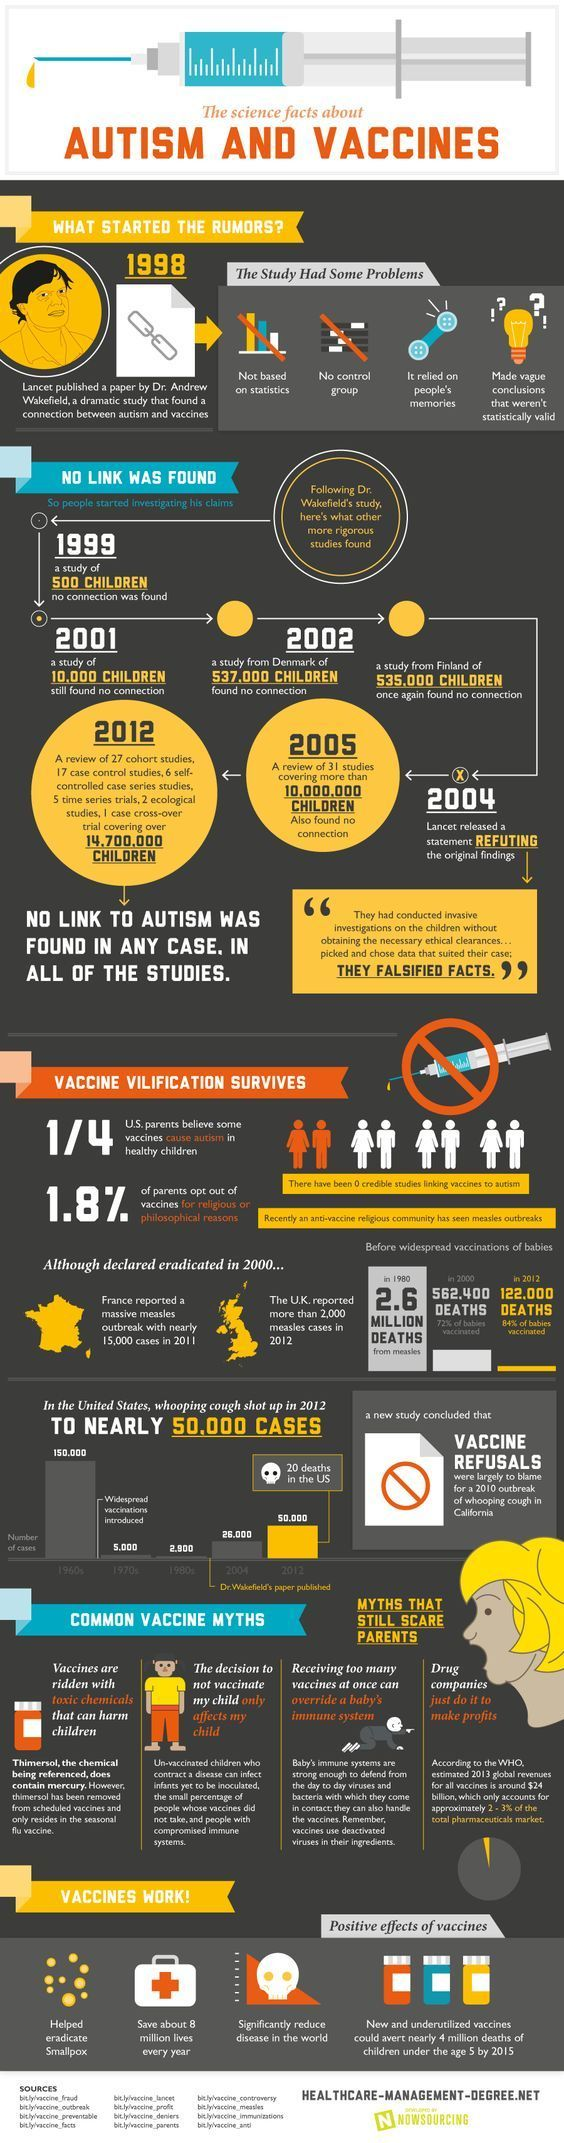 Did you know❓ Link between vaccines and autism is a myth. Source:Upworthy https://locatemotion.com/?utm_content=buffer3275e&utm_medium=social&utm_source=pinterest.com&utm_campaign=buffer #caregiver #autismcare #alzheimers #dementia #statistics #facts